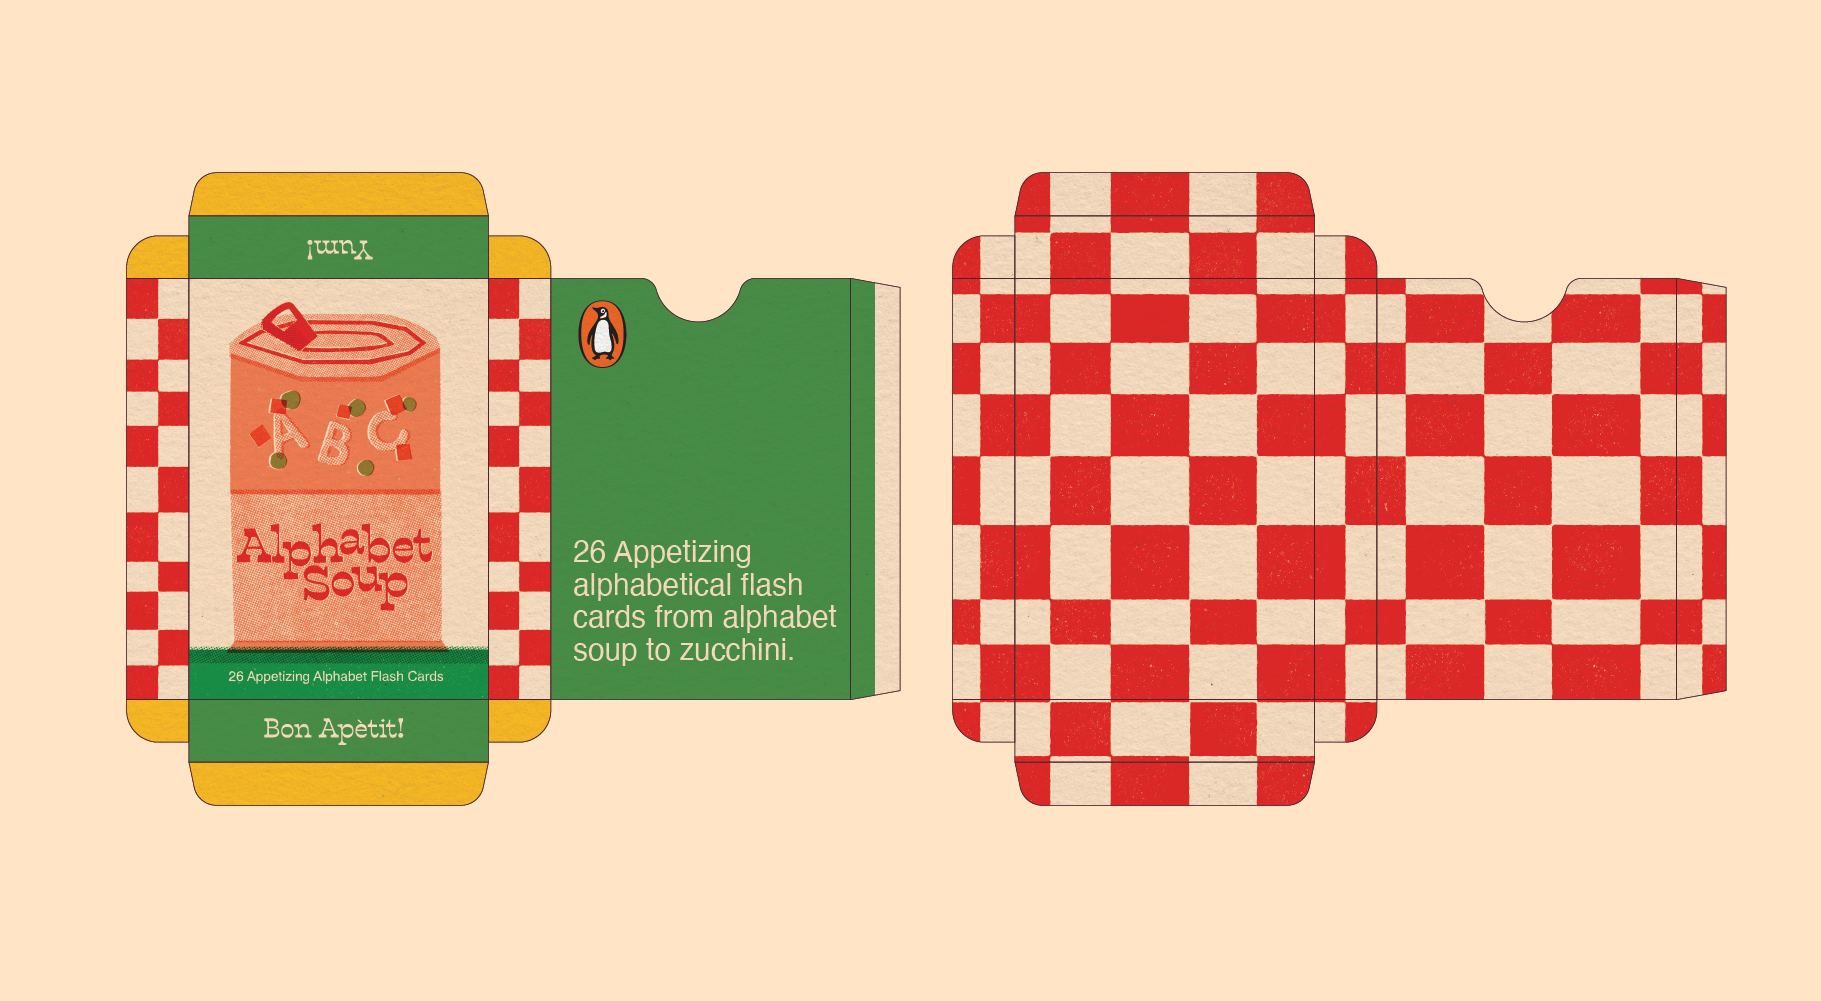 A net for the flashcard box. The inside features a red and white checkered pattern and the outside shows the cover illustration of a can of alphabet soup and a checkered pattern on the sides of the box.